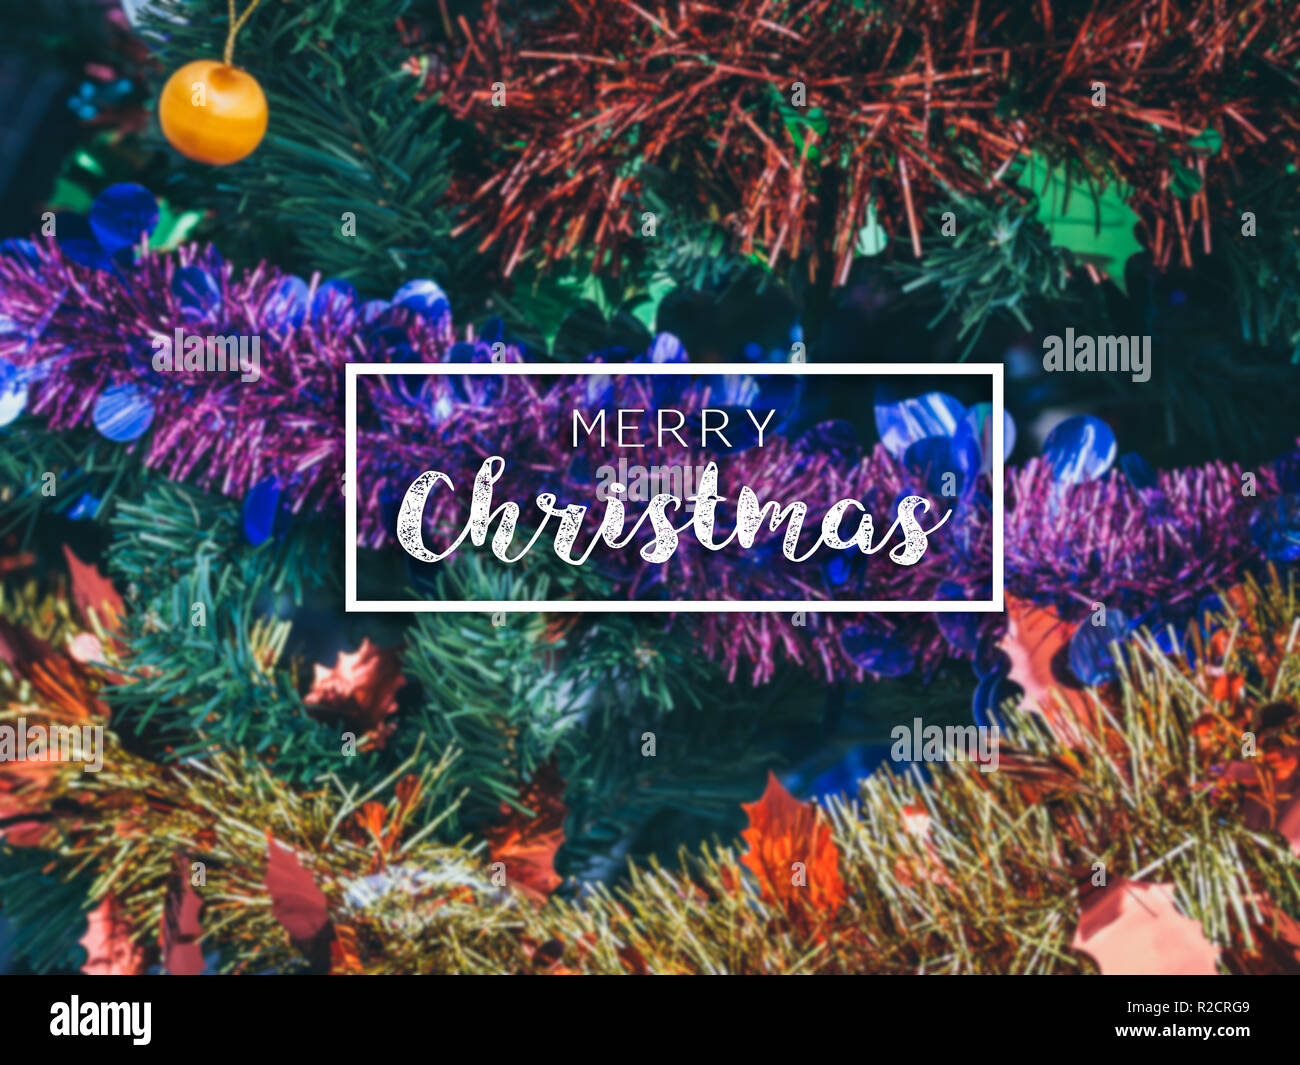 Typographical Merry Christmas Banner. Colorful Christmas background with Christmas ornament prop decoration on Christmas tree background. - Stock Image